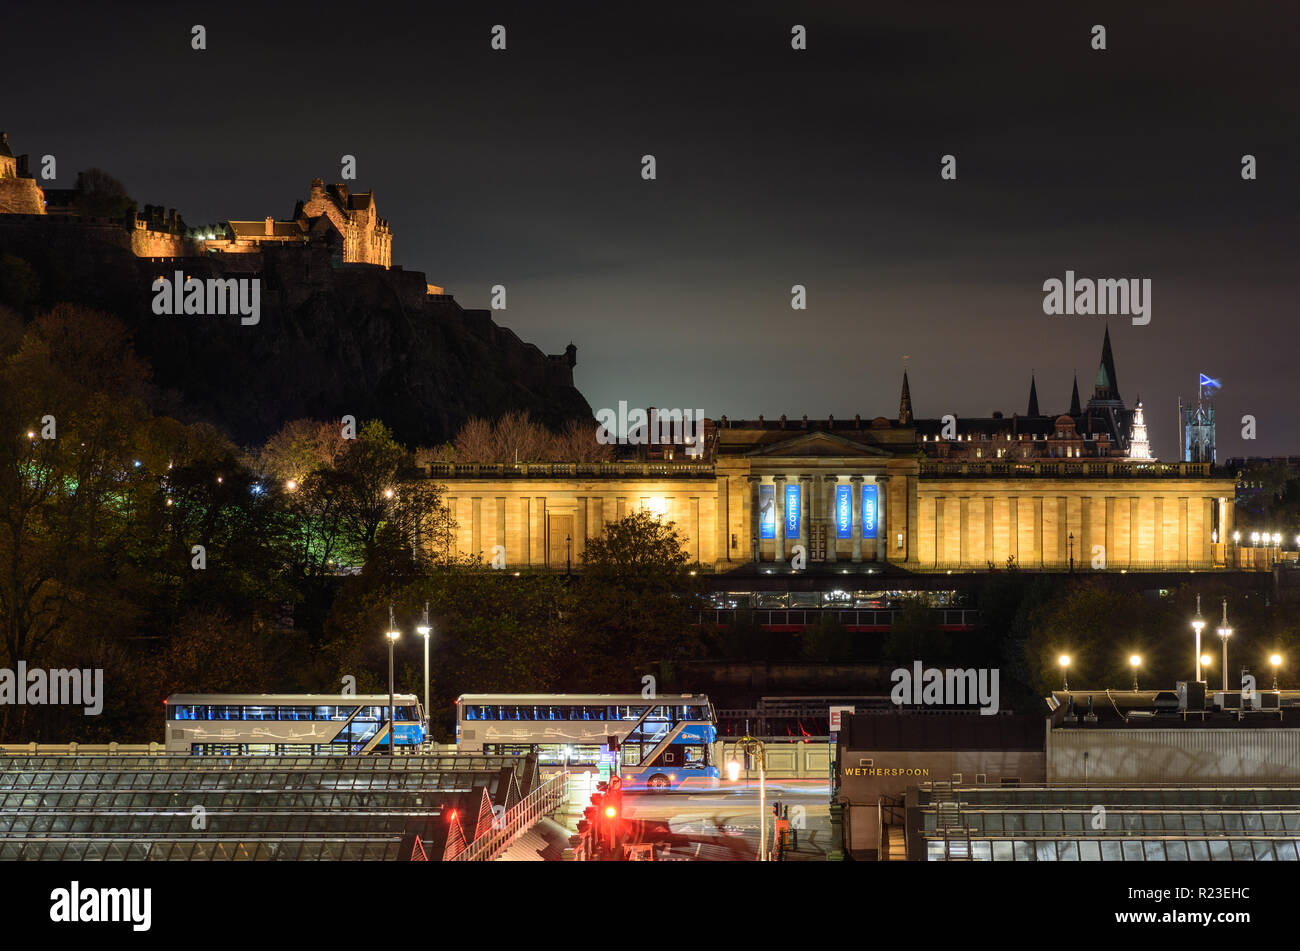 Edinburgh, Scotland, UK - November 2, 2018: The National Gallery of Scotland and Edinburgh Castle are lit at night above the glass roof of Waverley Ra - Stock Image